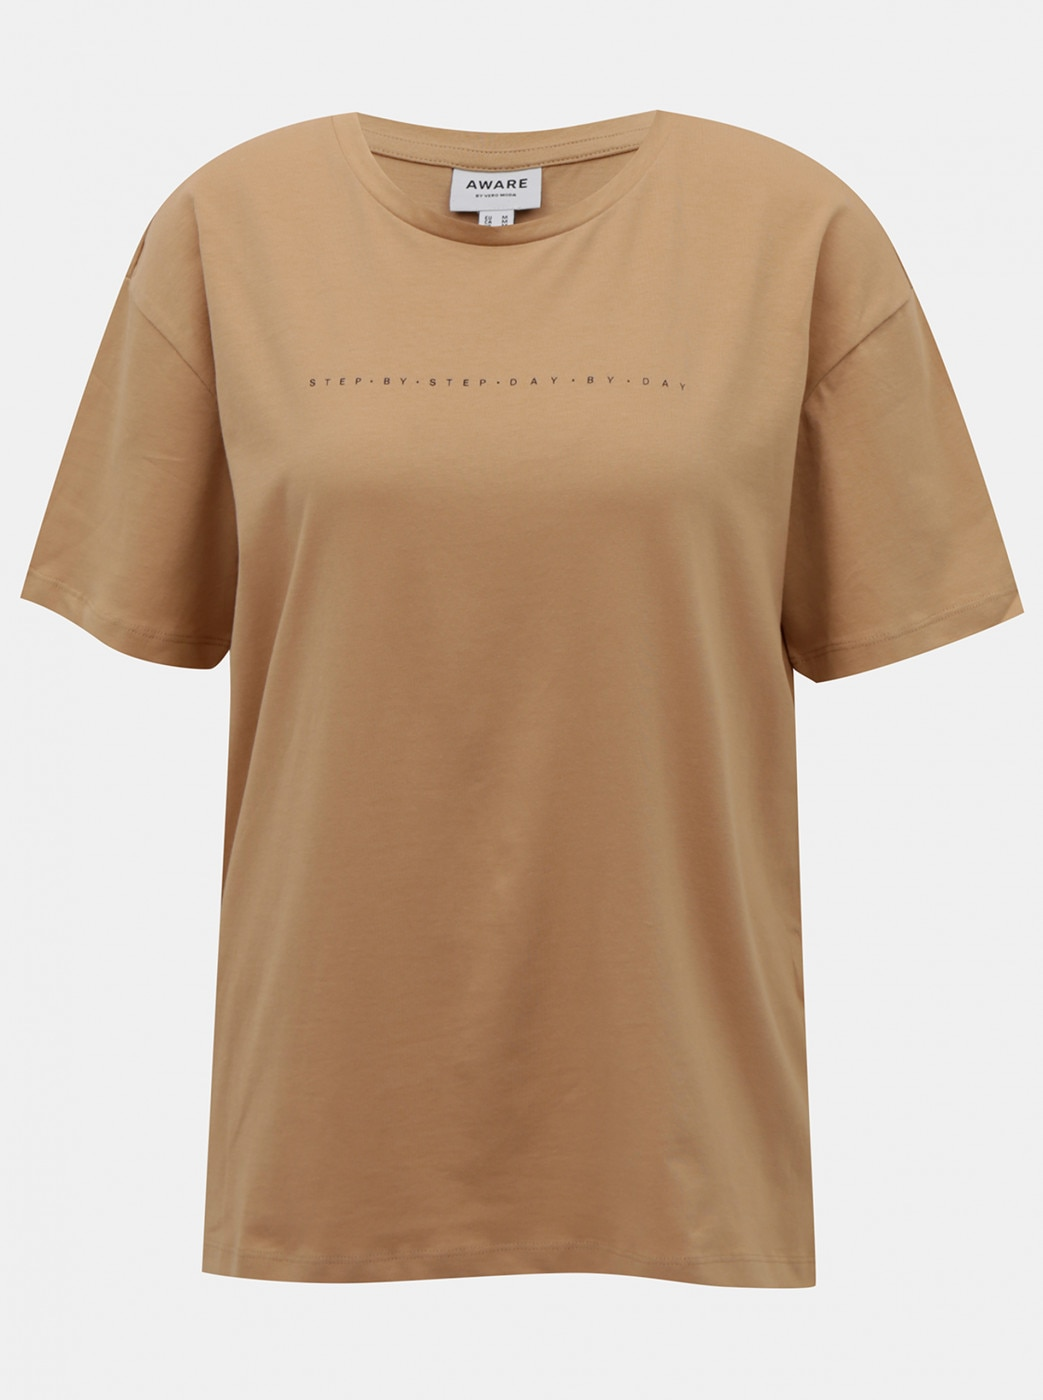 Beige loose t-shirt with printed AWARE by VERO MODA Lilje